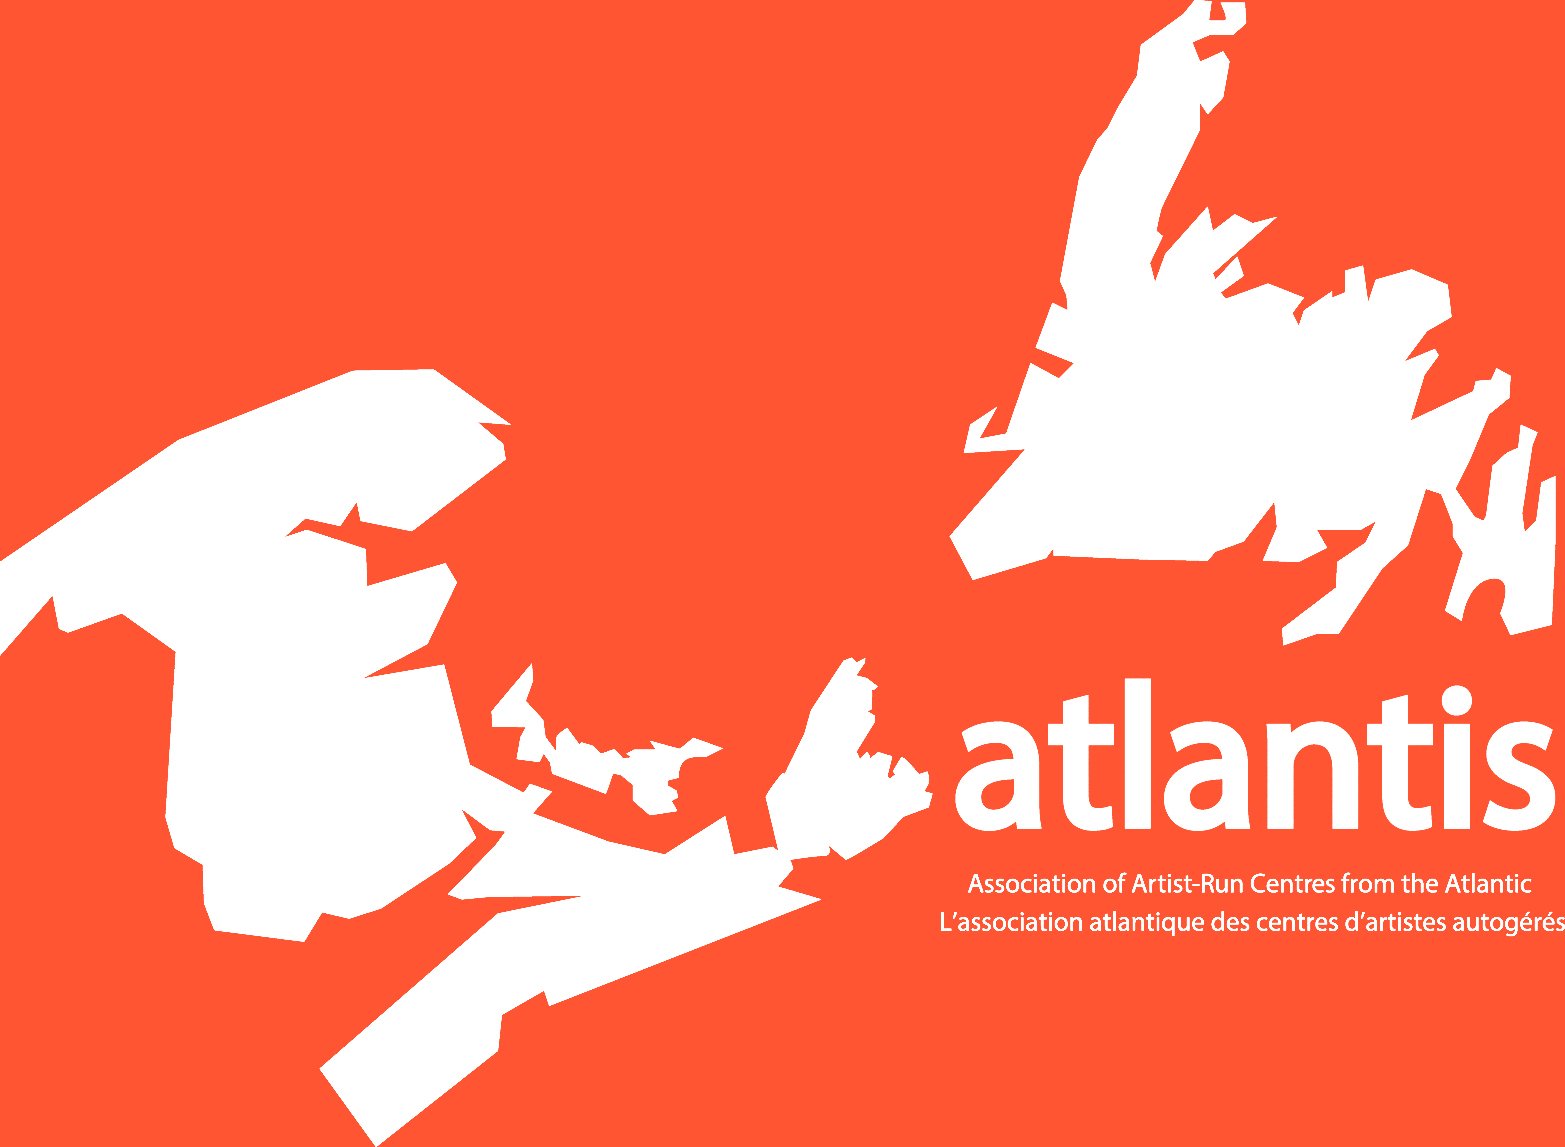 Atlantis_Logo_Red.jpg